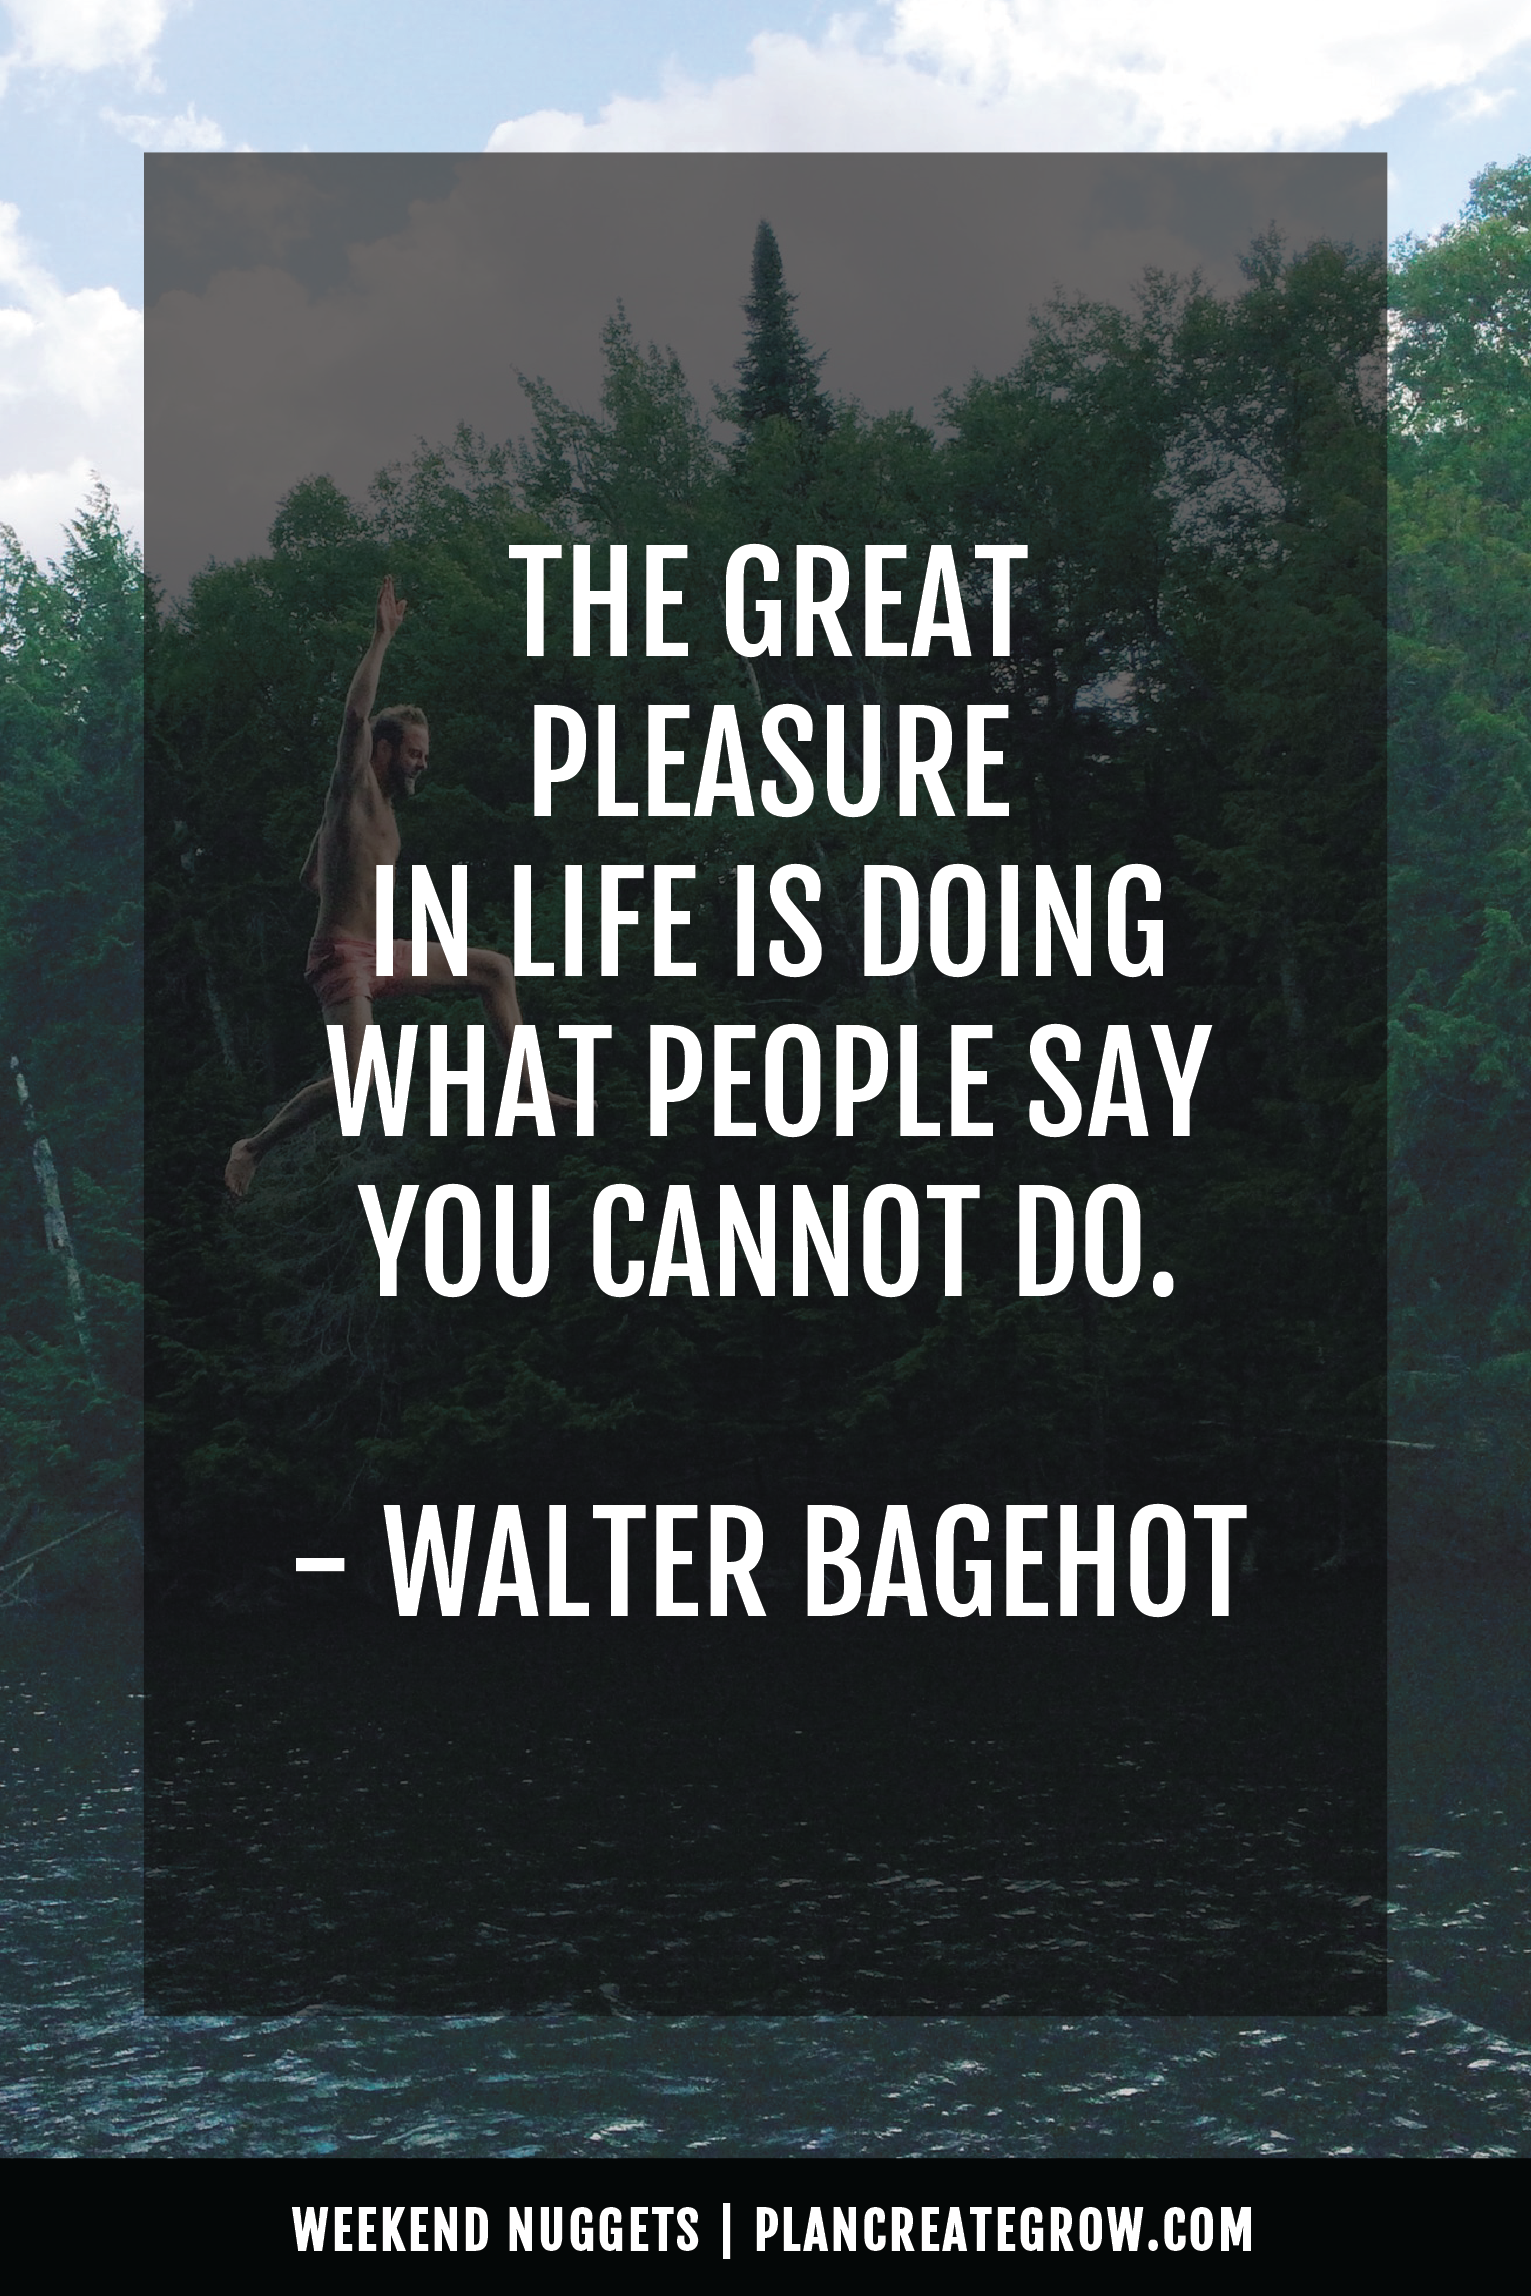 """""""The great pleasure in life is doing what people say you cannot do."""" - Walter Bagehot  This image forms part of a series called Weekend Nuggets - a collection of quotes and ideas curated to delight and inspire - shared each weekend. For more, visit plancreategrow.com/weekend-nuggets."""